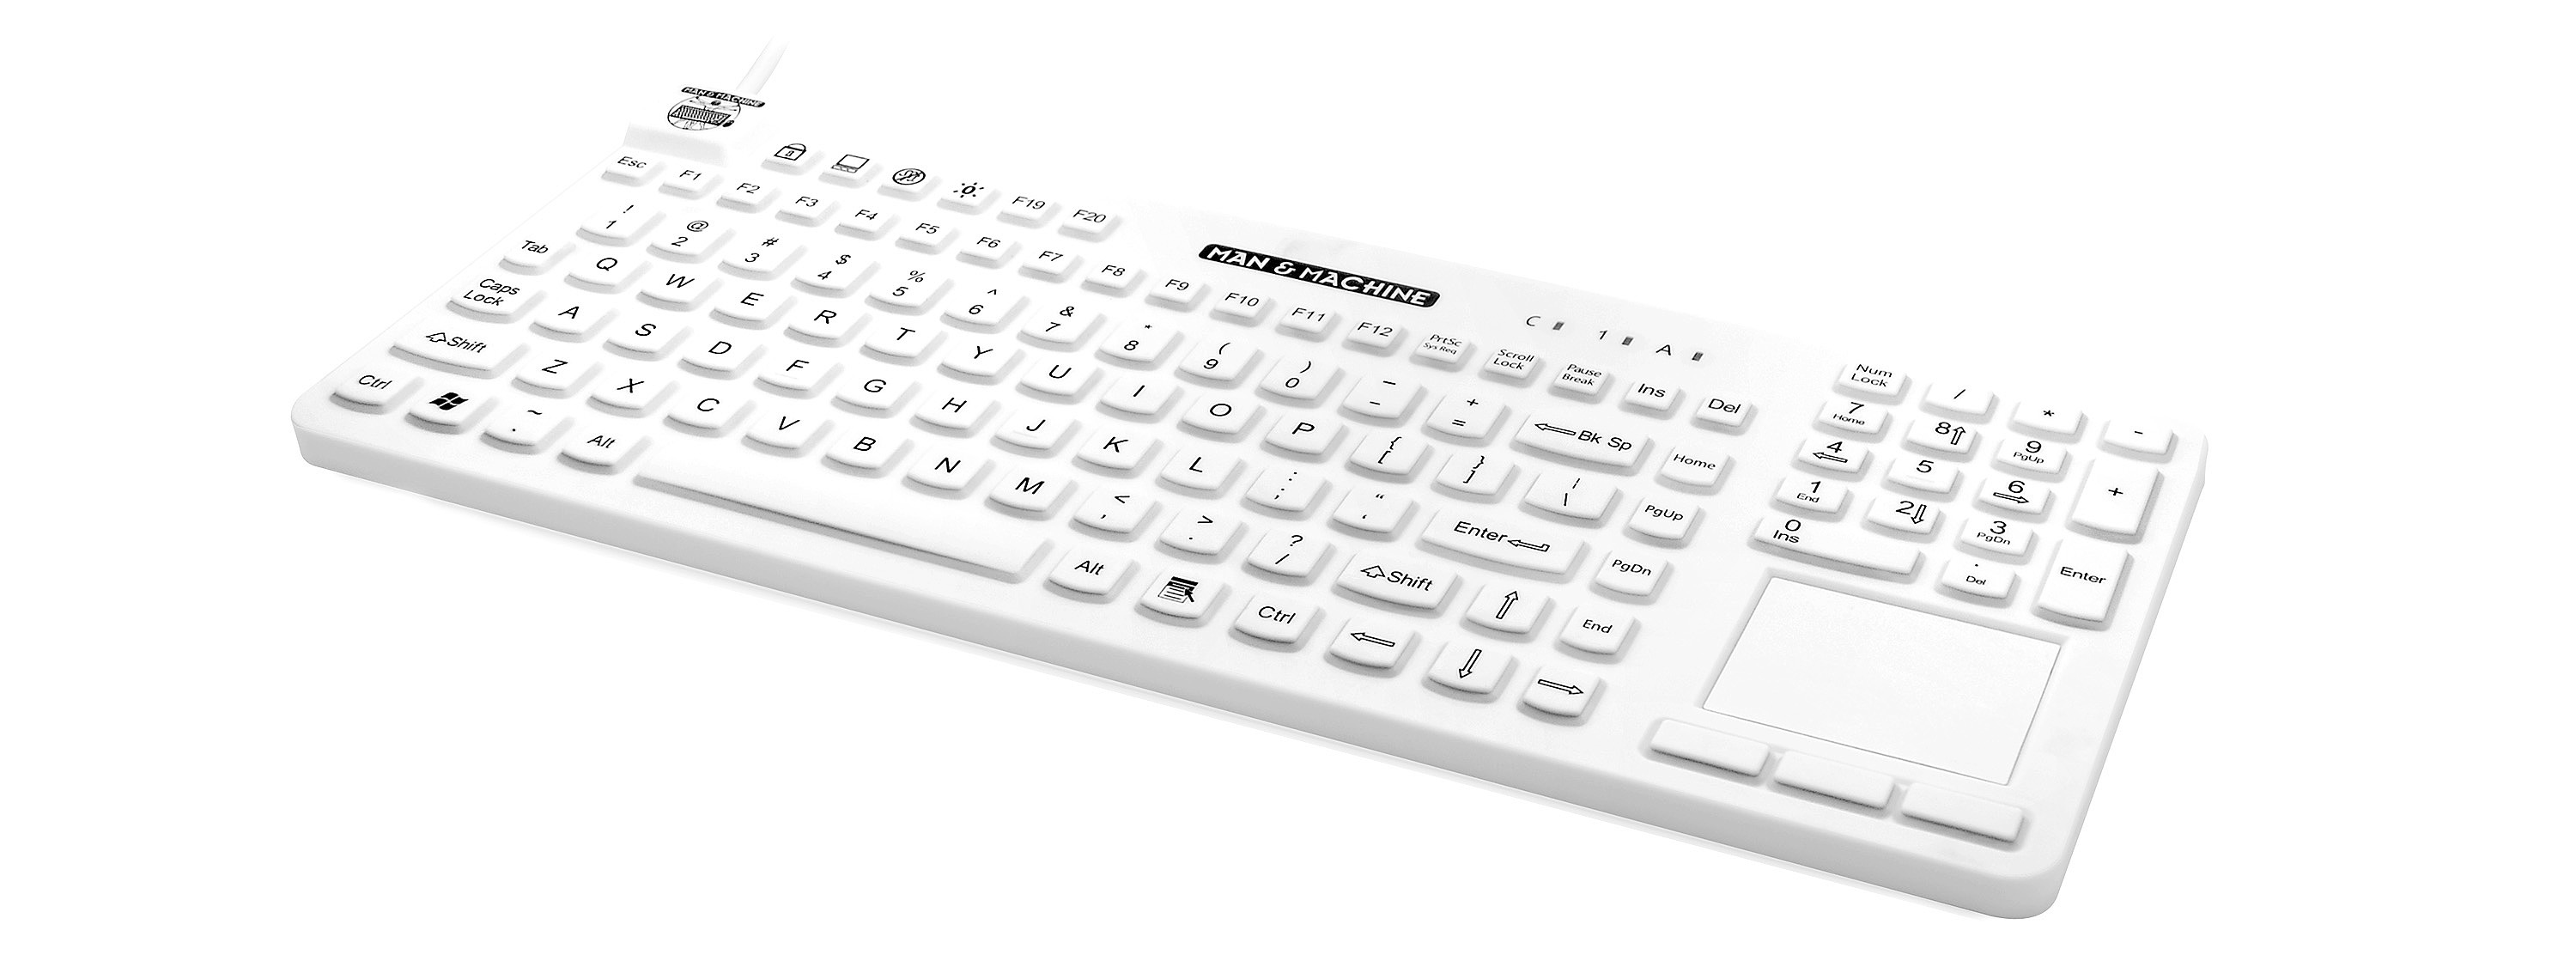 Our premium waterproof typing device is a waterproof keyboard that is made up withstand 1: